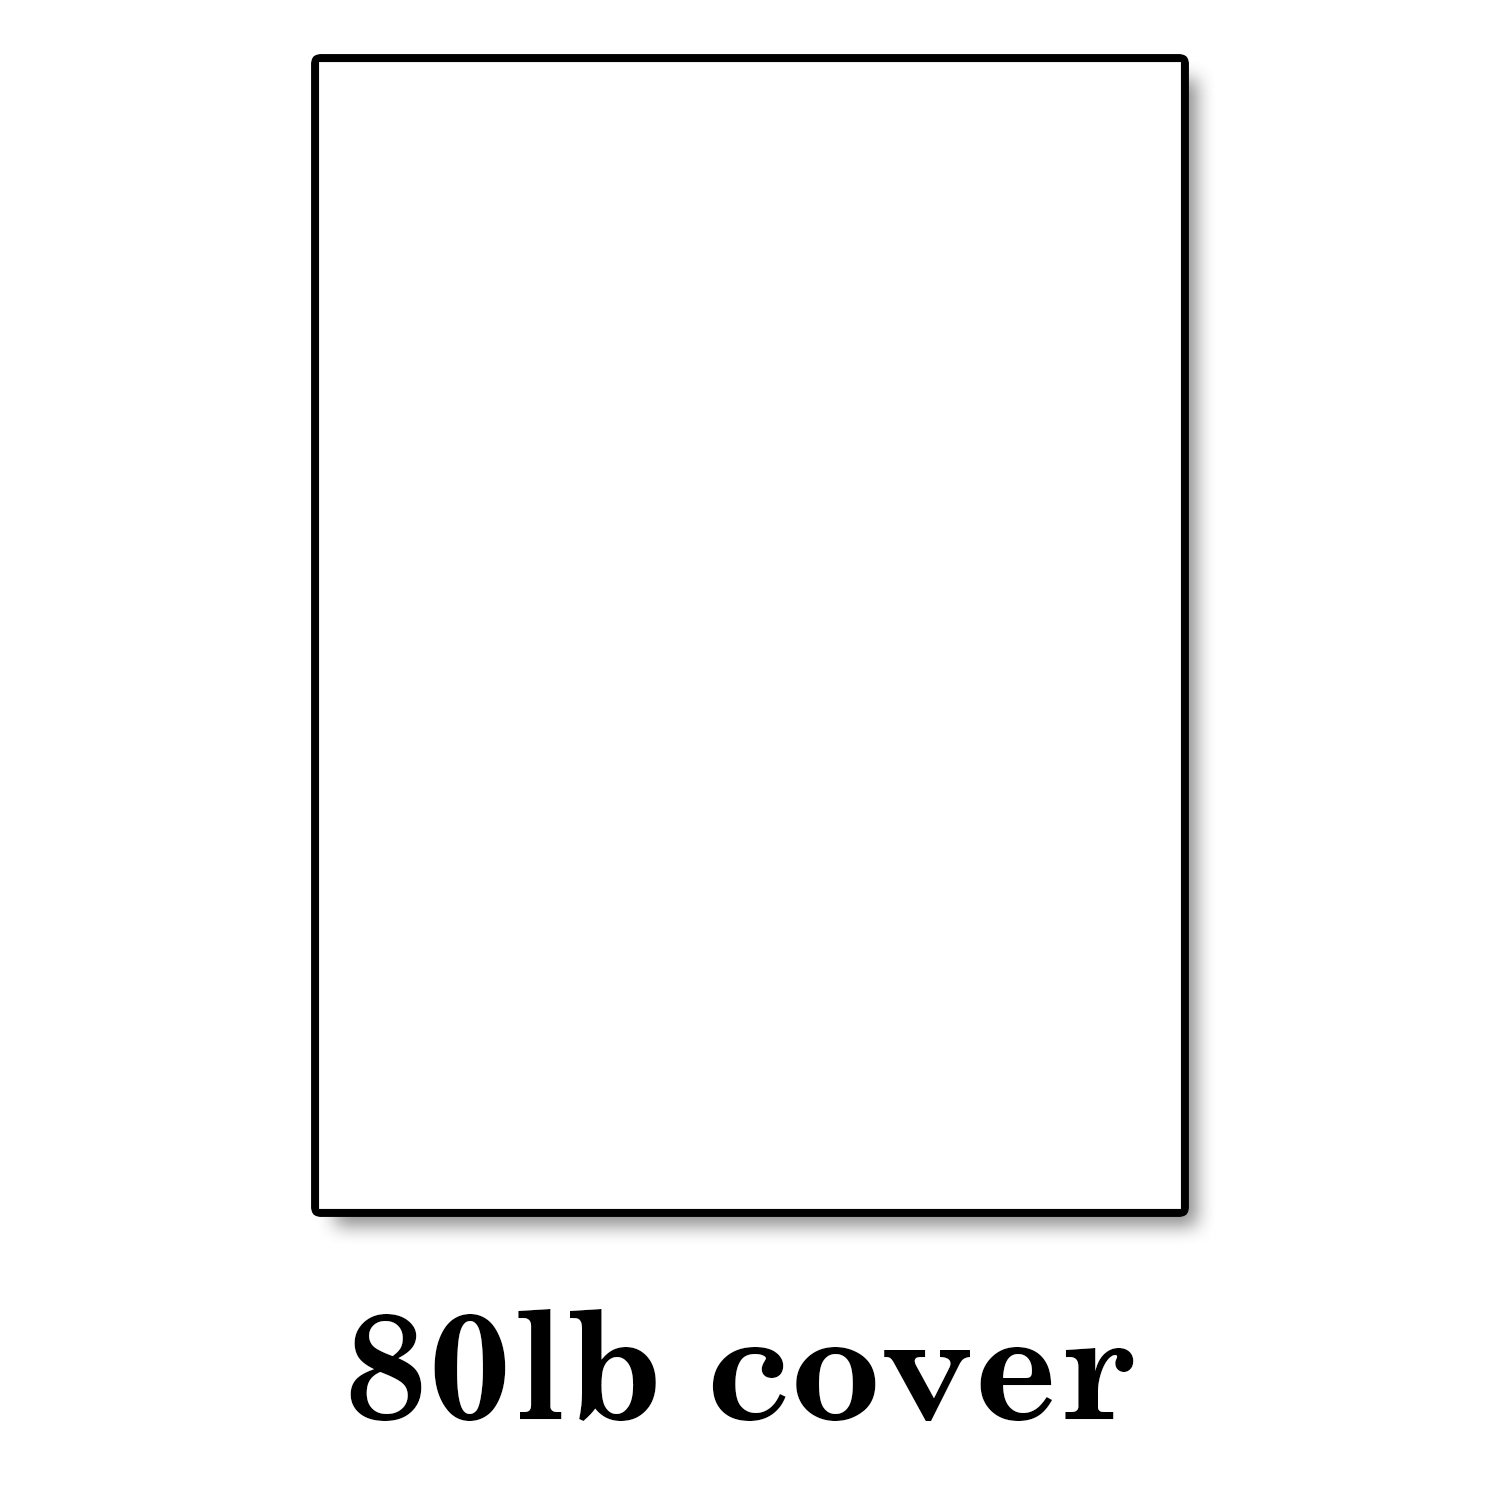 Hamilco White Cardstock Thick Paper – 8 1/2 x 11'' Blank Heavy Weight 80 lb Cover Card Stock - for Brochure Award and Stationery Printing - 50 Pack